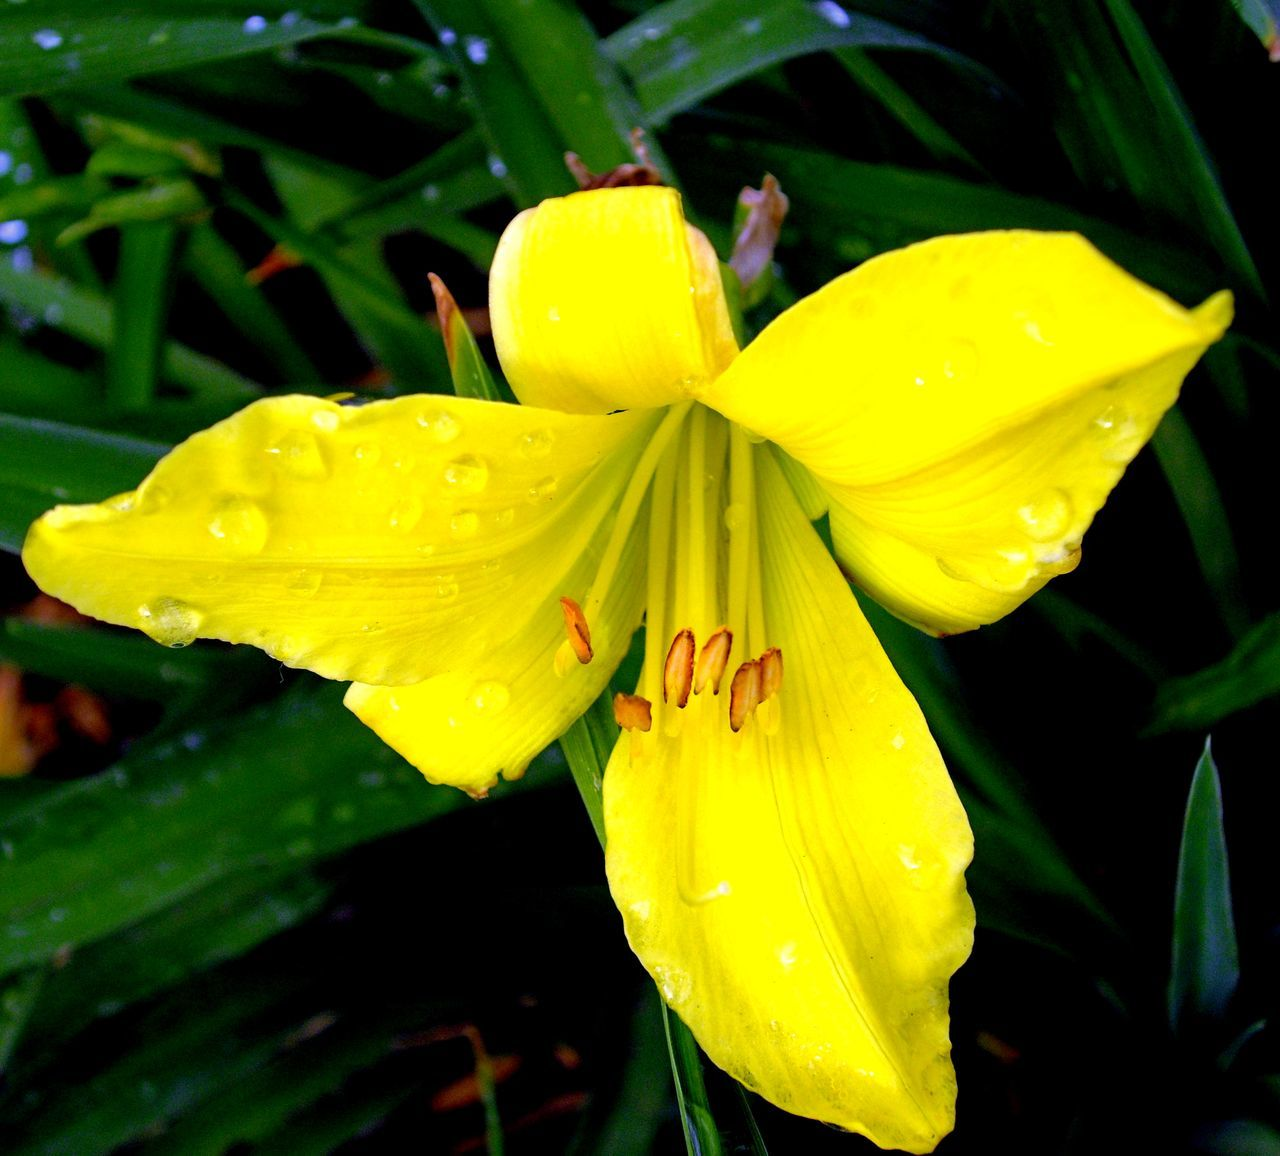 flower, growth, petal, freshness, nature, yellow, wet, fragility, beauty in nature, drop, flower head, plant, water, outdoors, close-up, day, green color, blooming, no people, raindrop, leaf, day lily